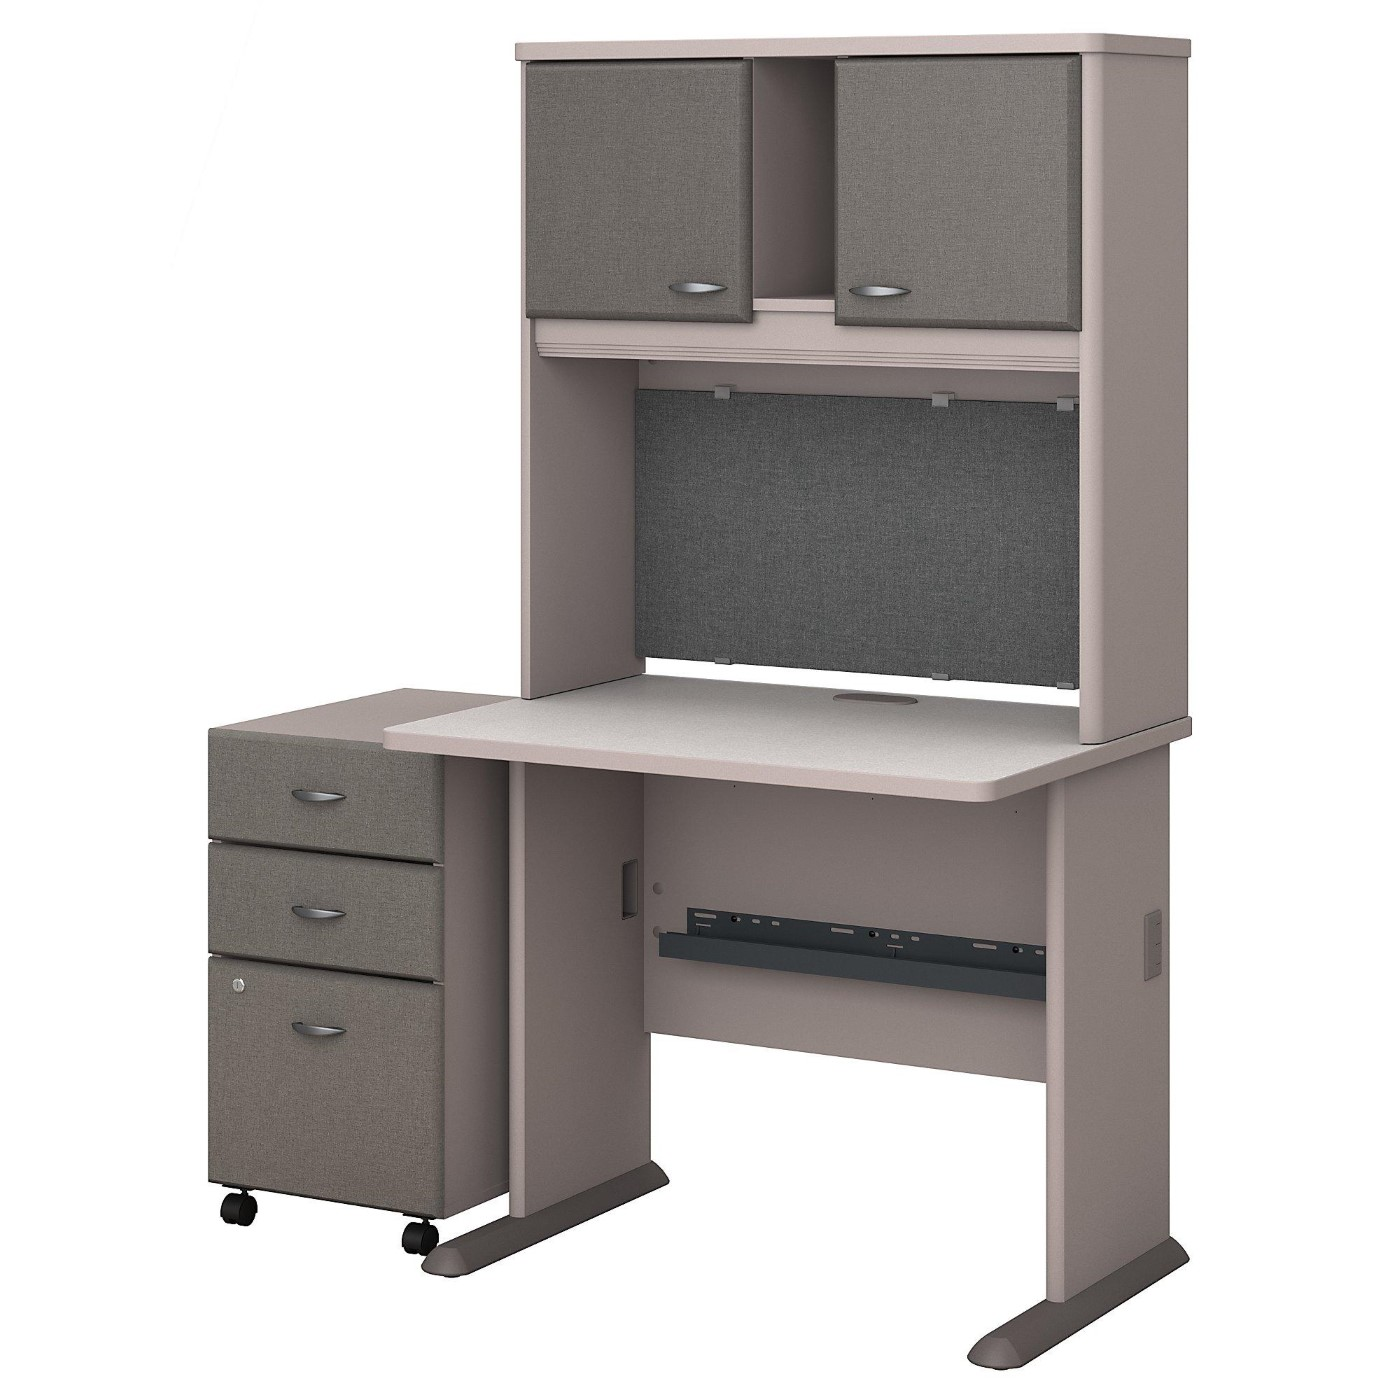 <font color=#c60><b>BUSH BUSINESS FURNITURE SERIES A 36W DESK WITH HUTCH AND MOBILE FILE CABINET. FREE SHIPPING</font></b>